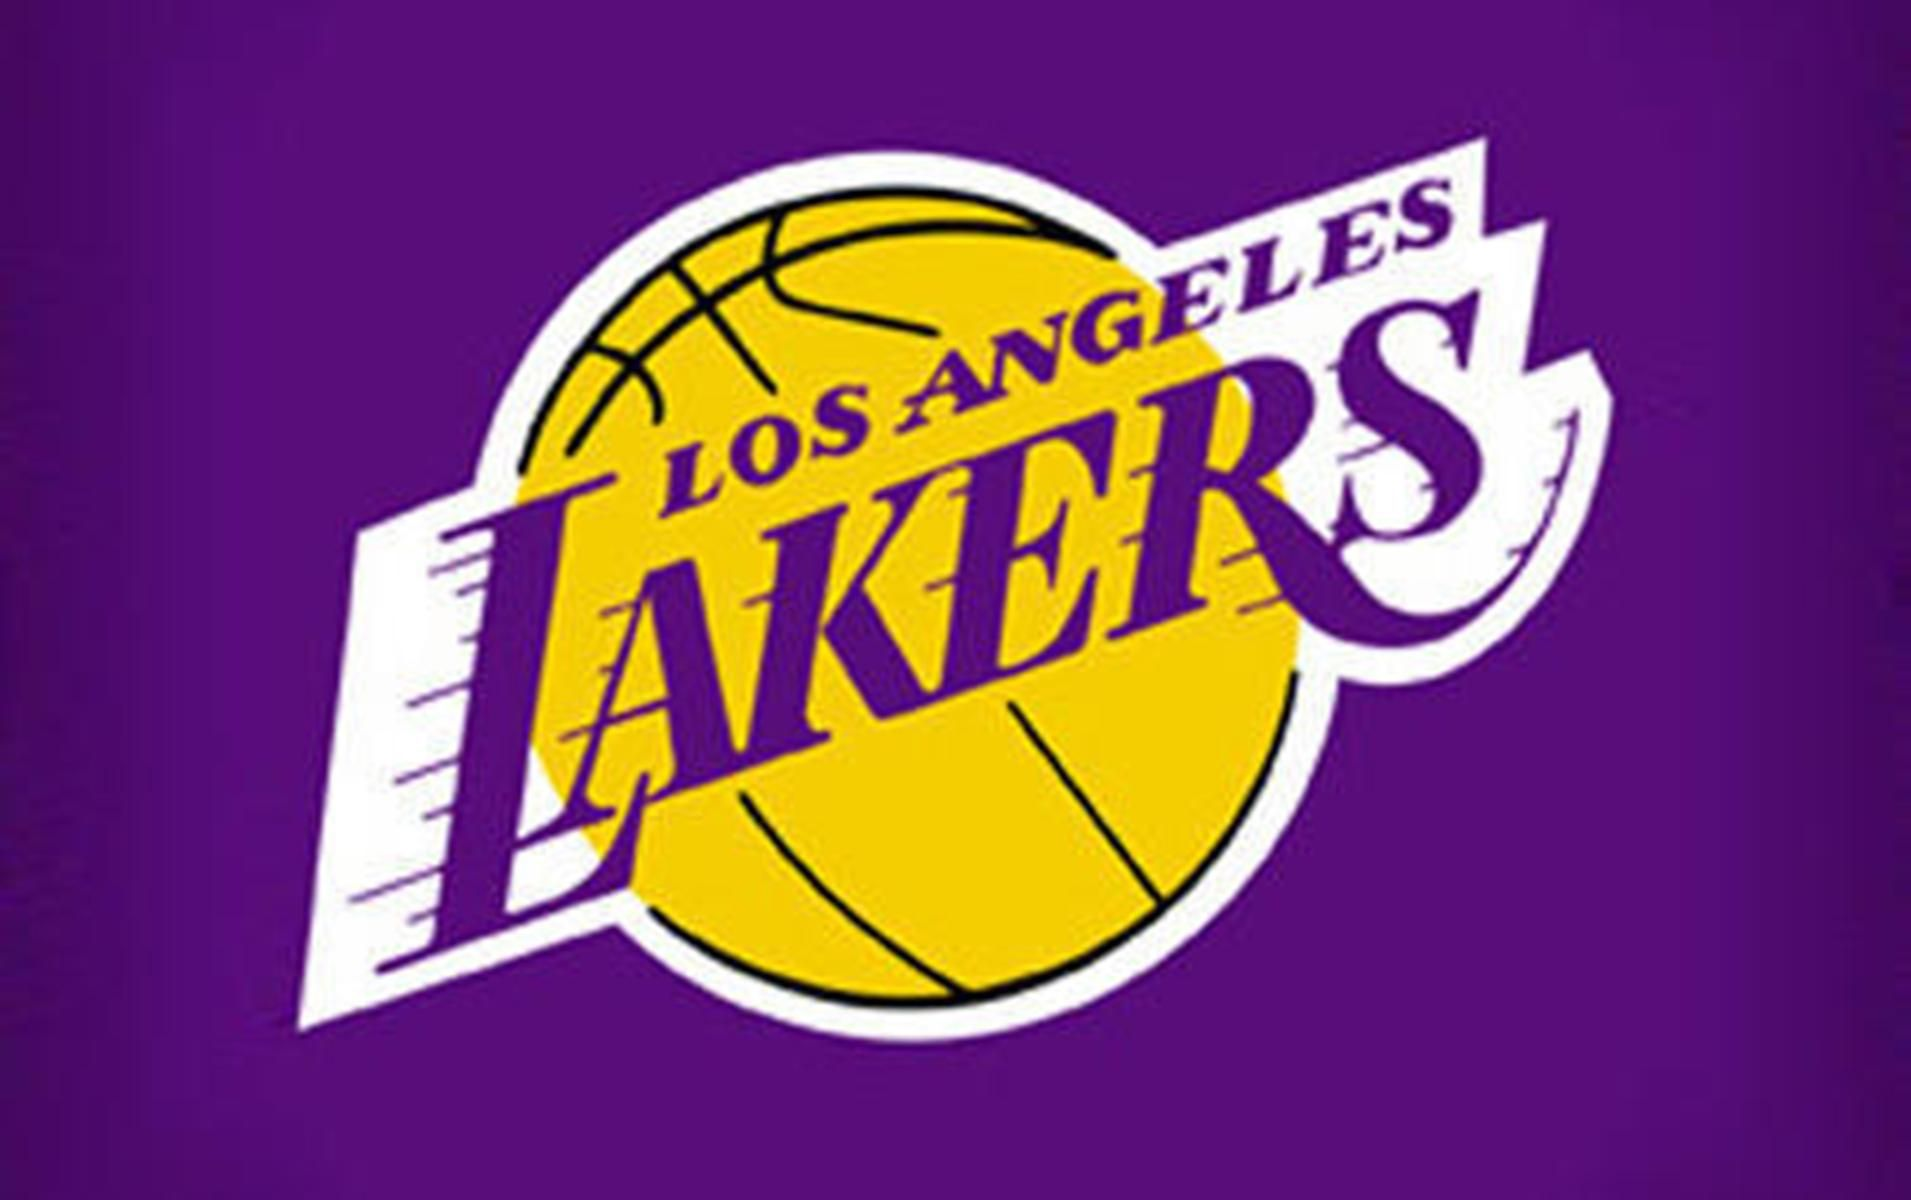 Lakers wallpapers and infographics los angeles lakers 19201080 la lakers wallpapers and infographics los angeles lakers 19201080 la lakers wallpapers hd 42 wallpapers adorable wallpapers voltagebd Image collections